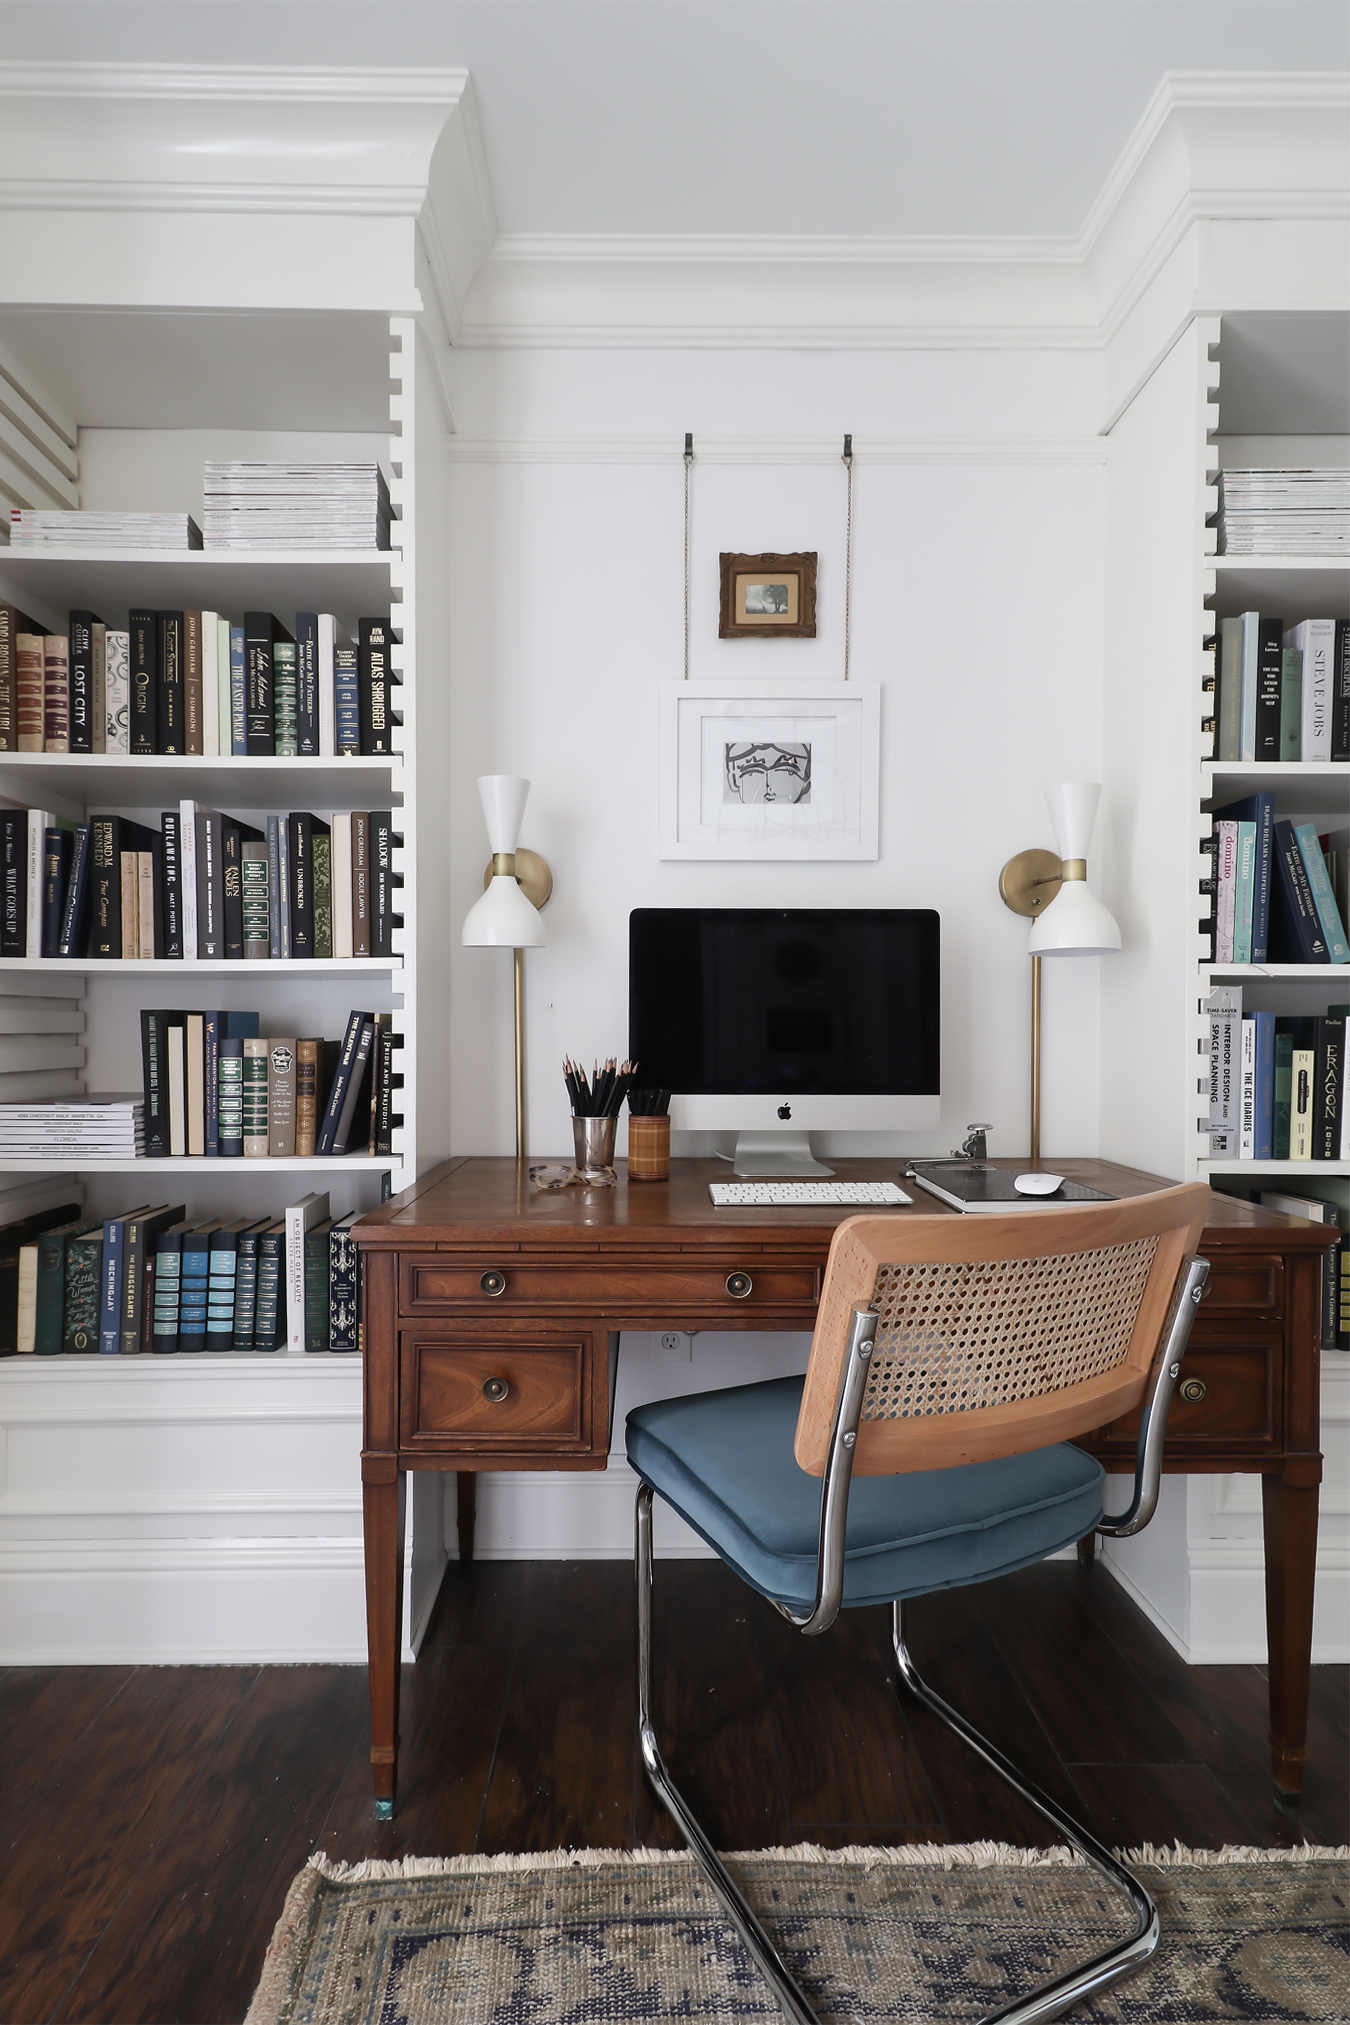 Décor Inspiration: The Beautiful Home Office of Kristin Jackson at Hunted Interior